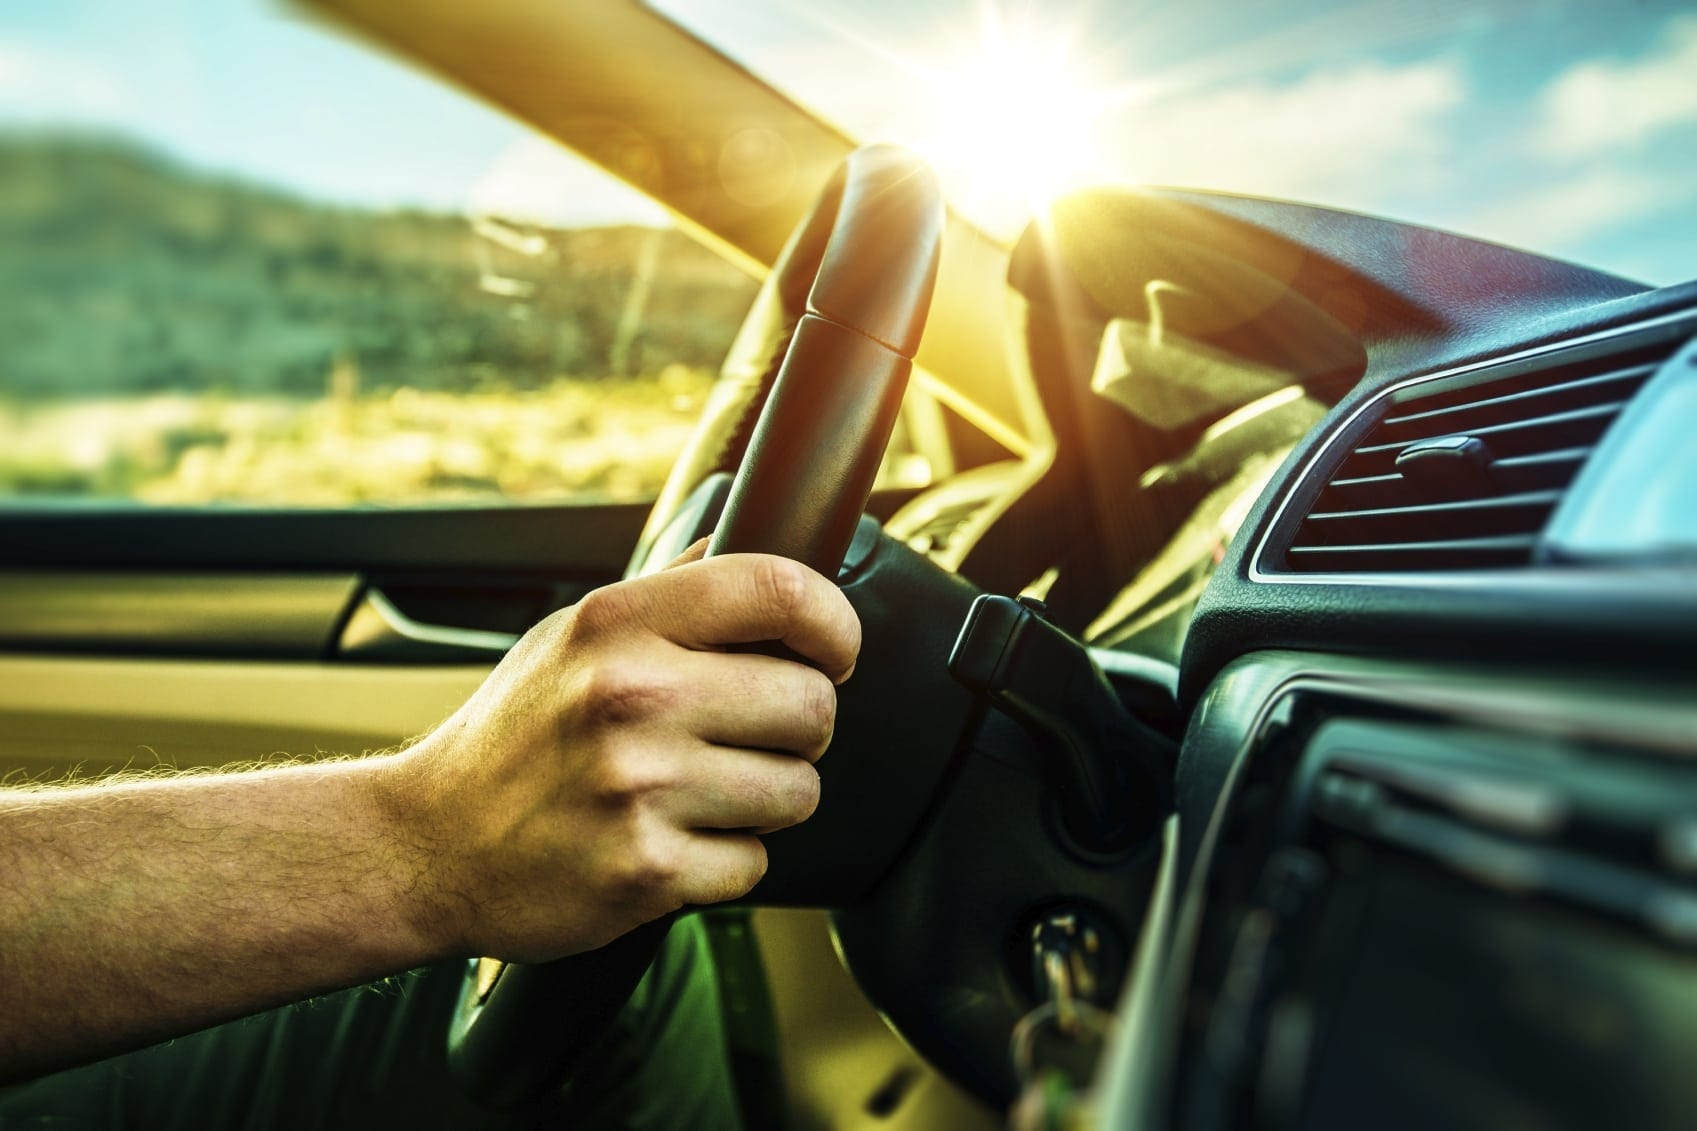 Male Driver With Hand On Steering Wheel Stock Photo